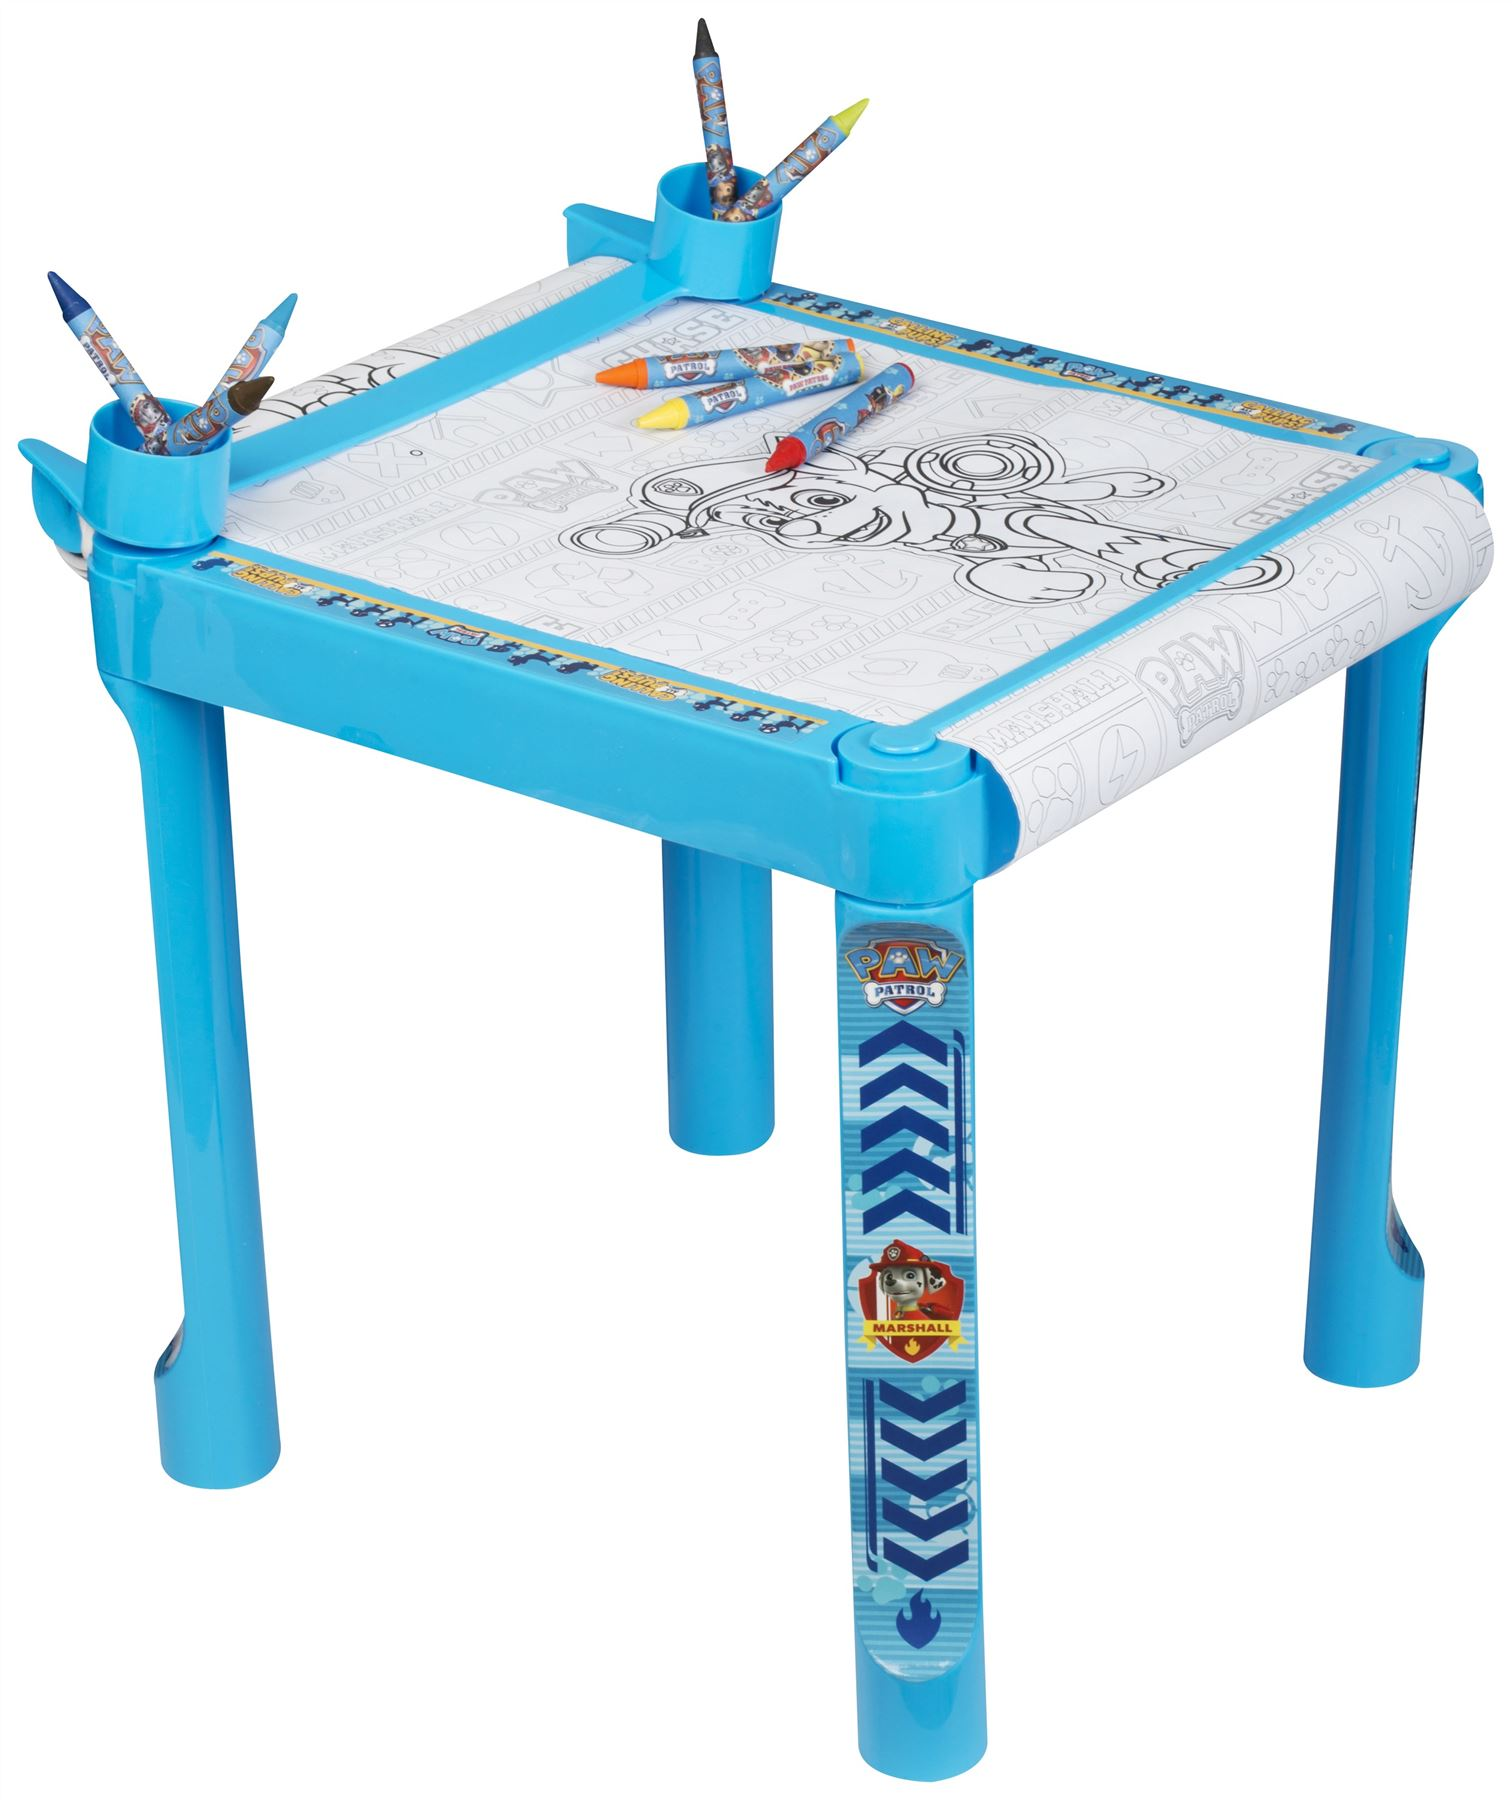 Ni nick jr games and coloring on online - Paw Patrol Colouring Table Jumbo Crayons Markers Paper Roll Nick Jr